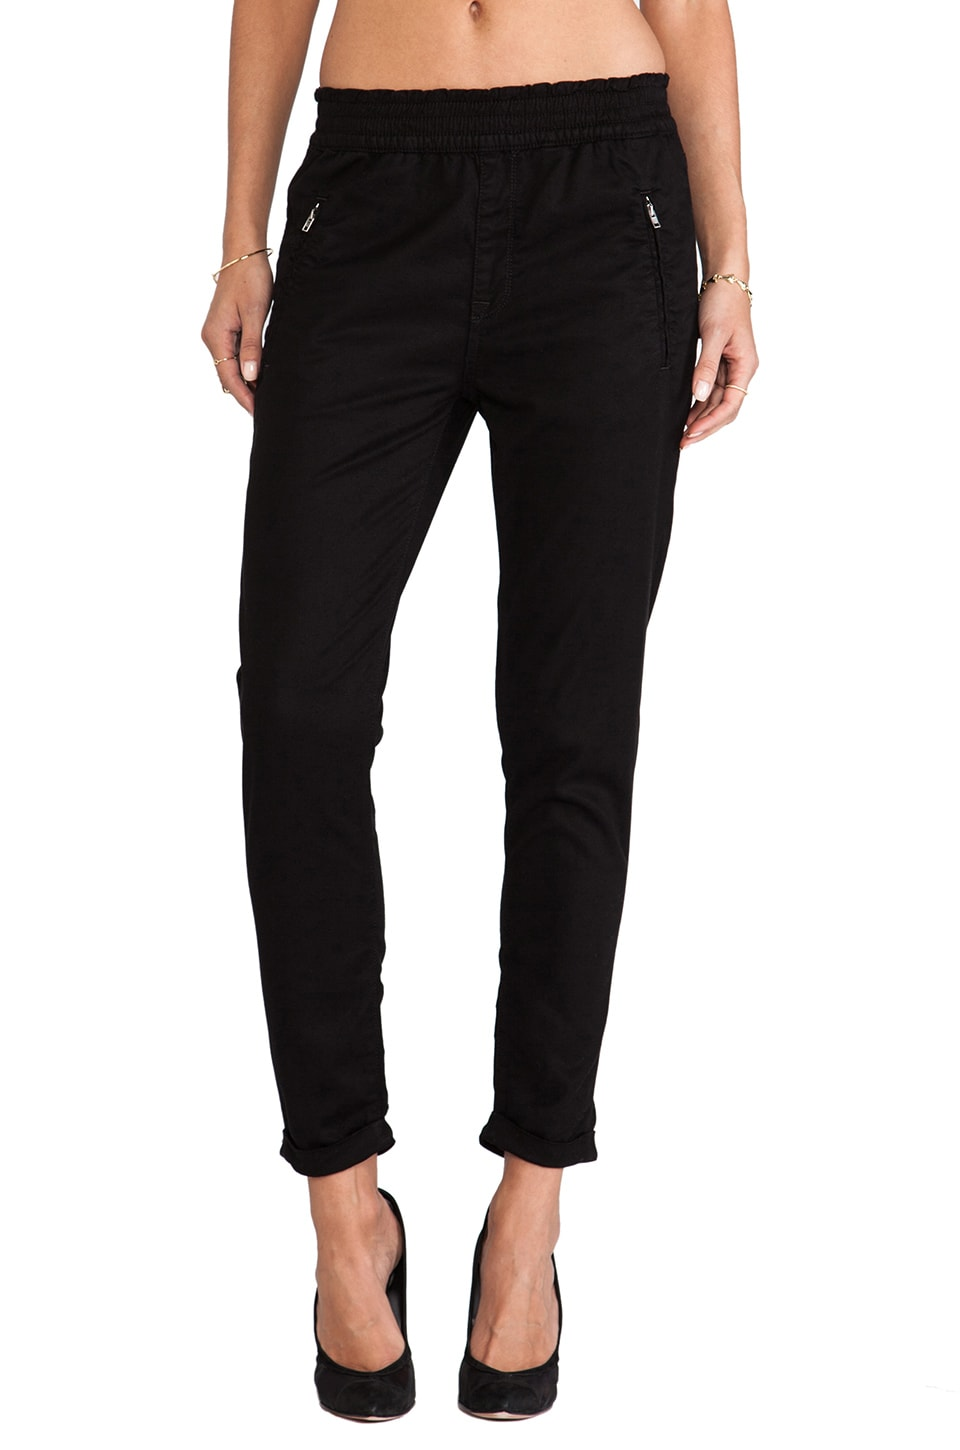 7 For All Mankind Soft Pant in Black Enzyme Twill